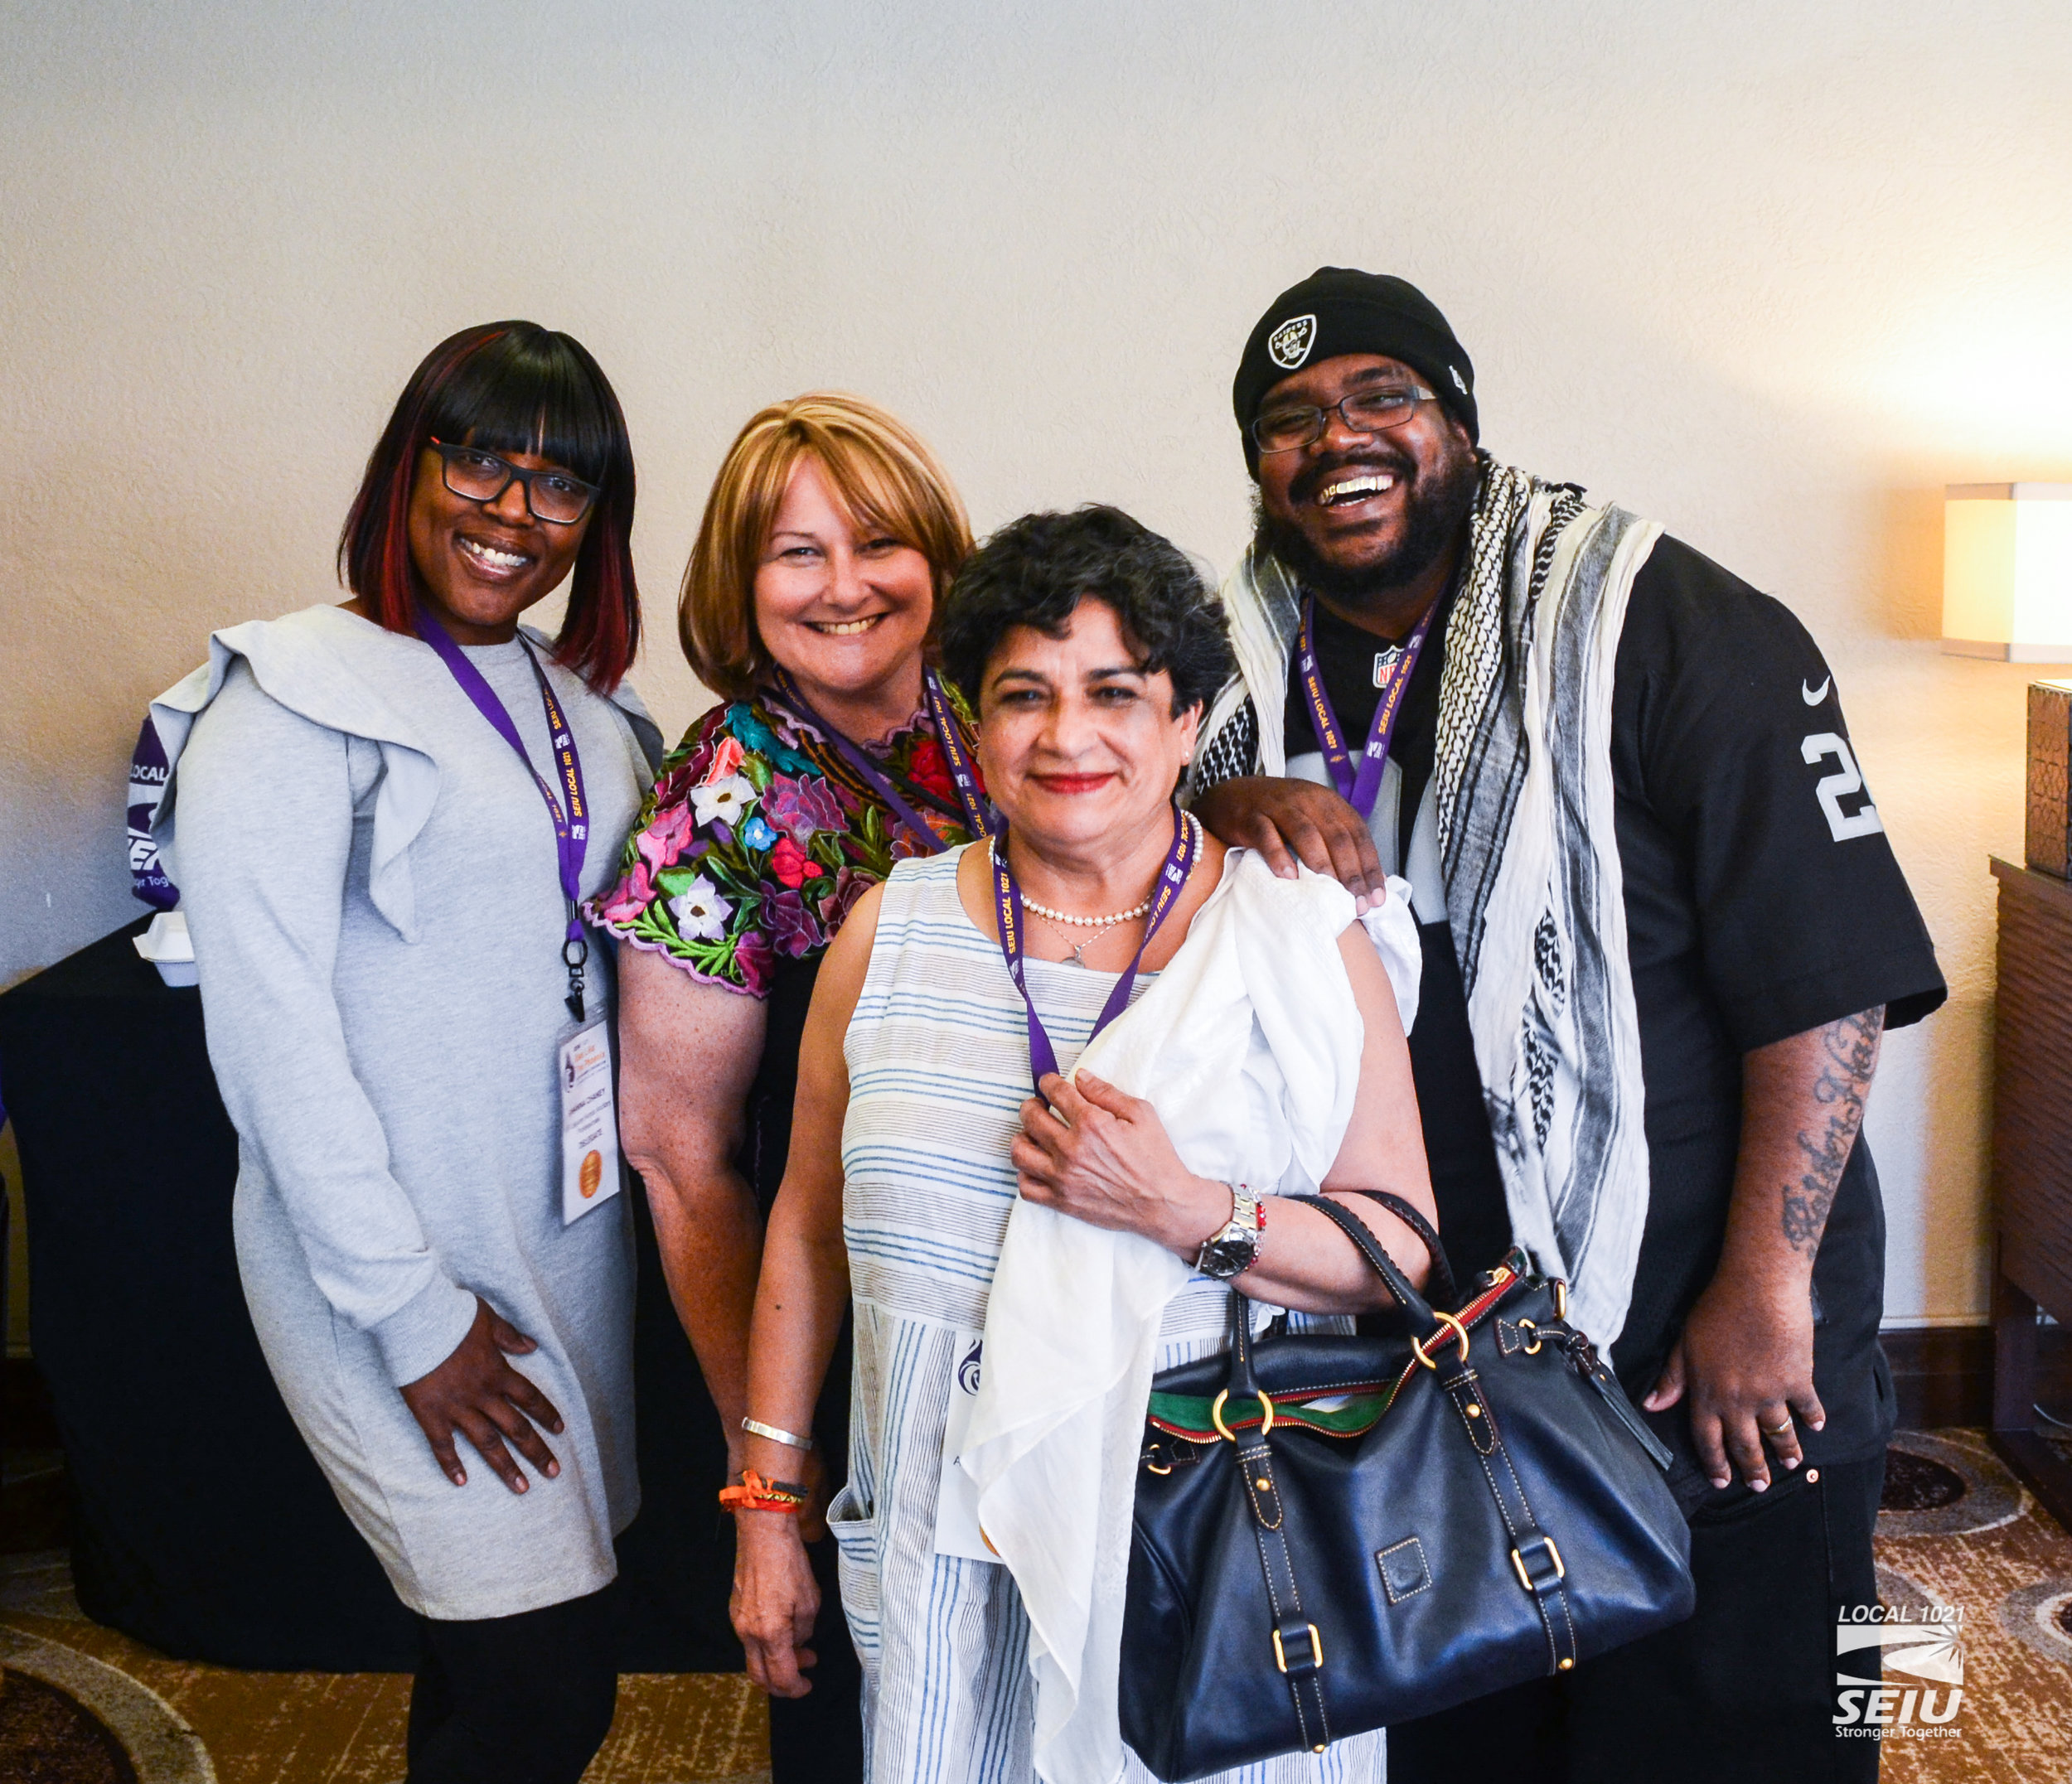 SEIU 1021 Convention Group Portraits-64.jpg